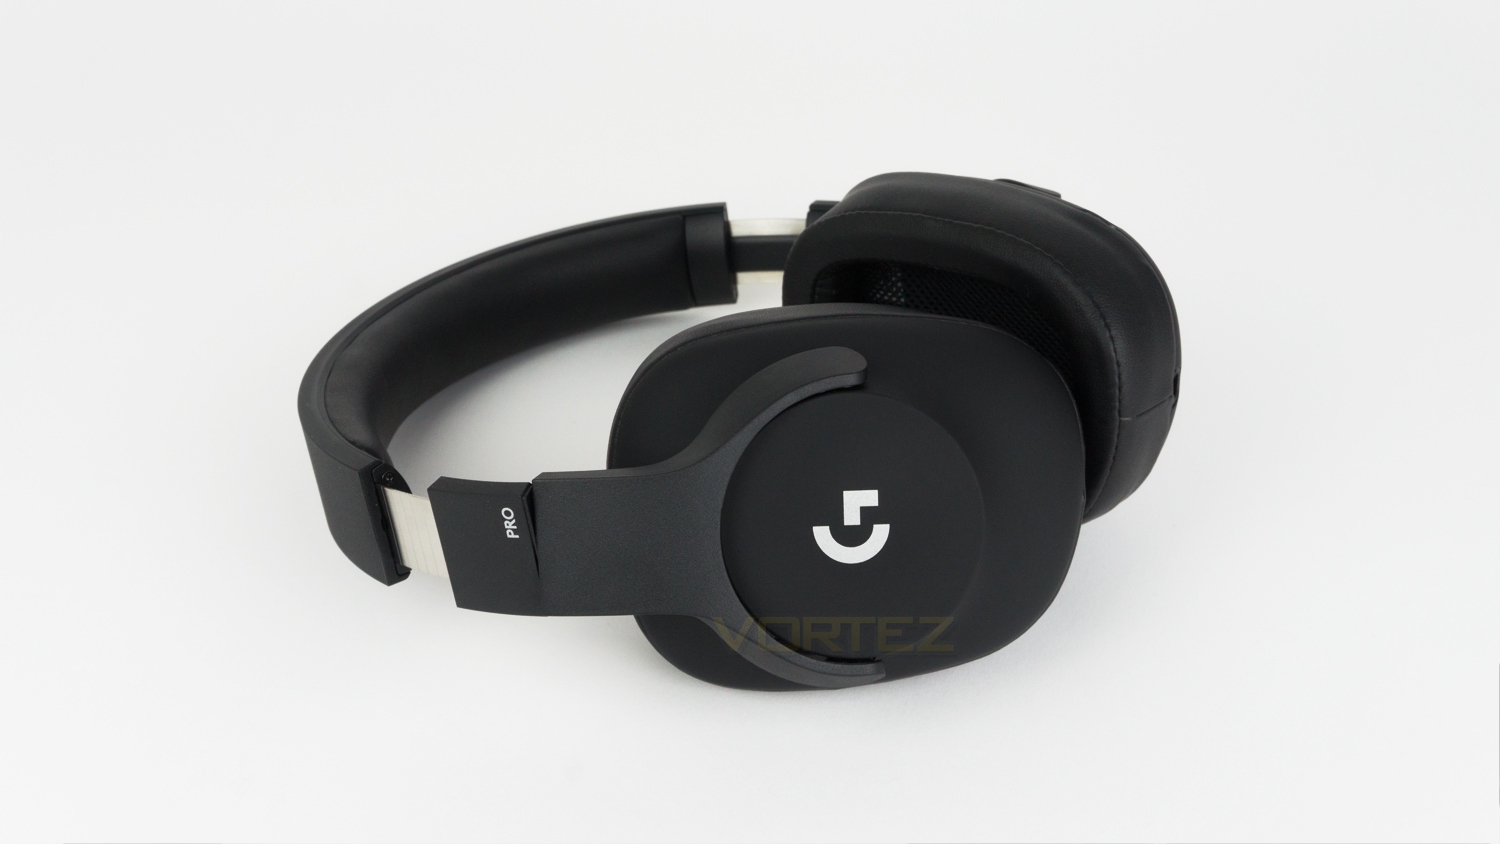 Logitech G PRO Gaming Headset Review - Closer Look